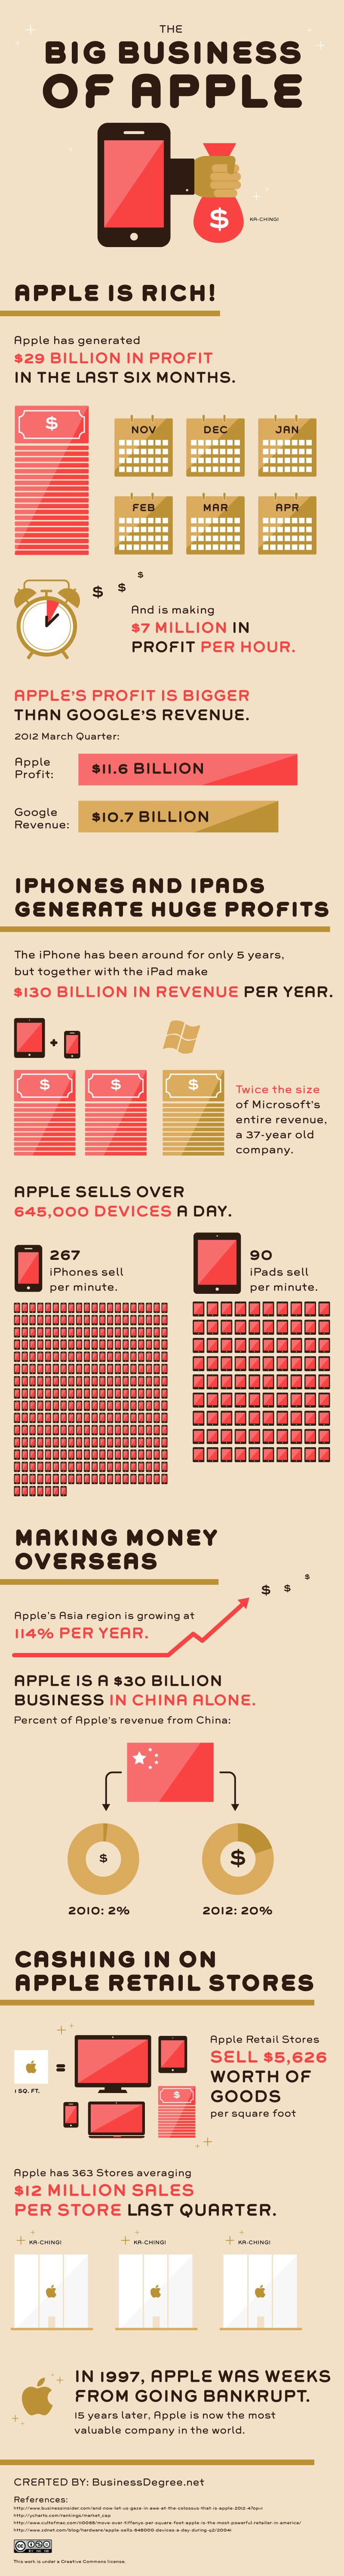 Big Business of #Apple